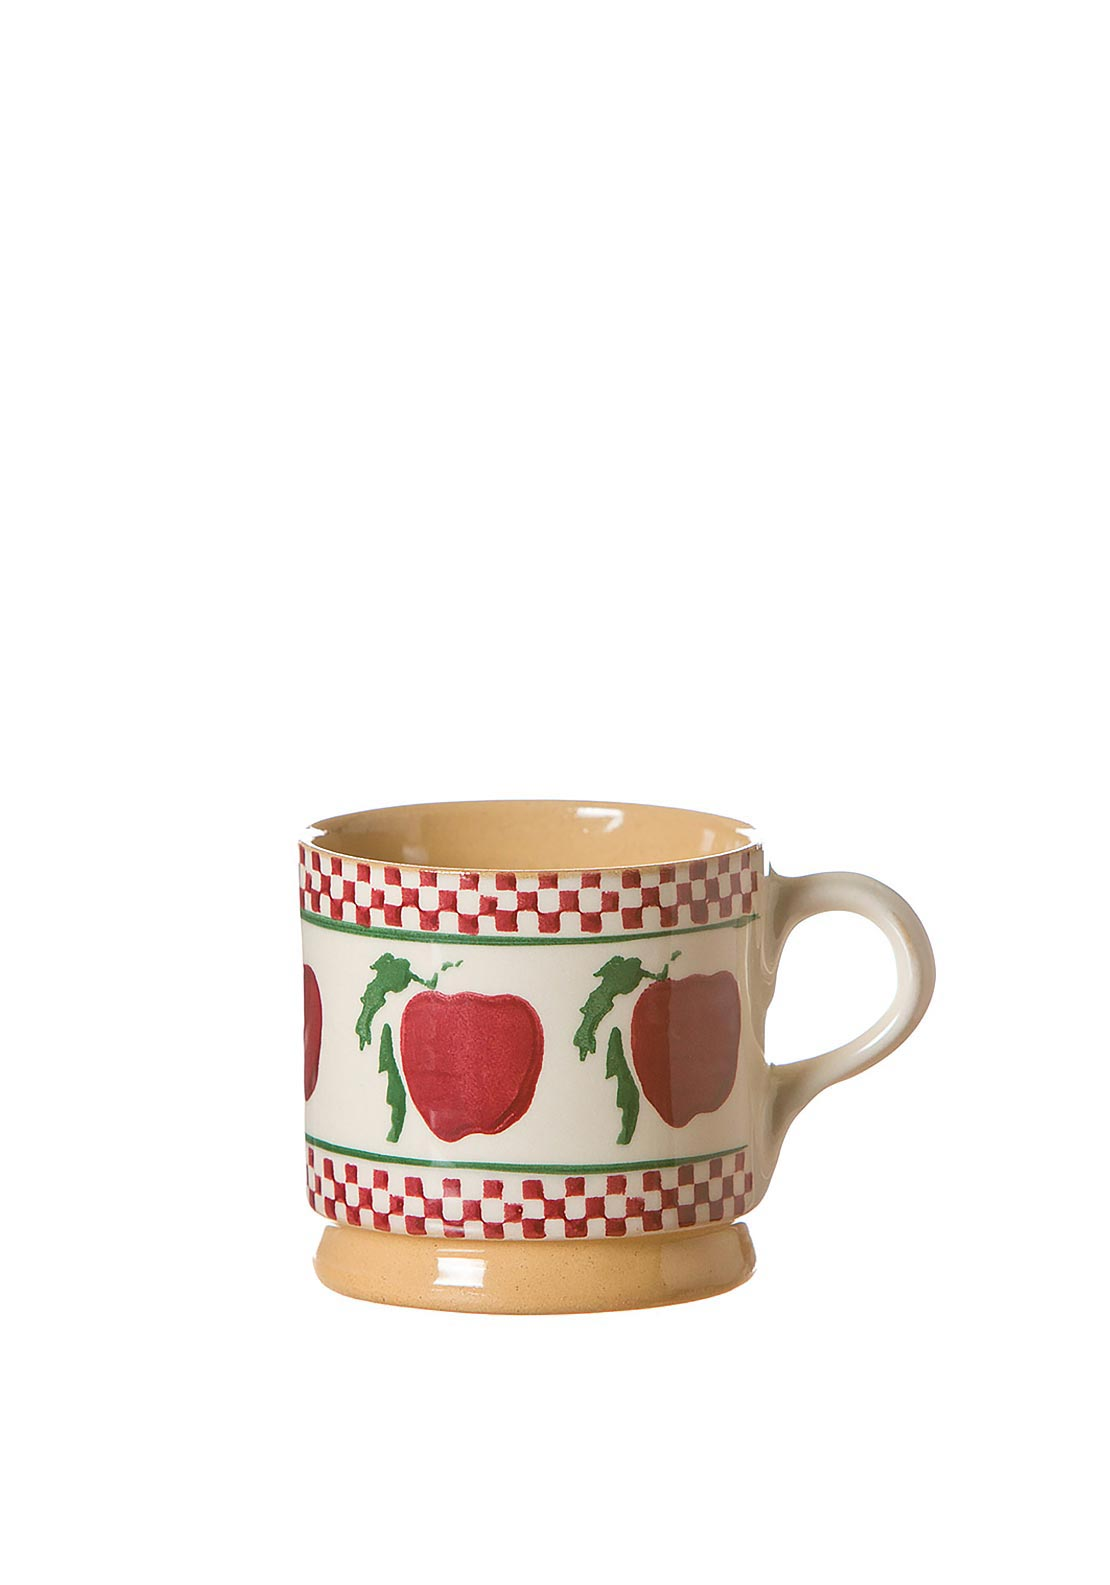 Nicholas Mosse Pottery Apple Mug, Small